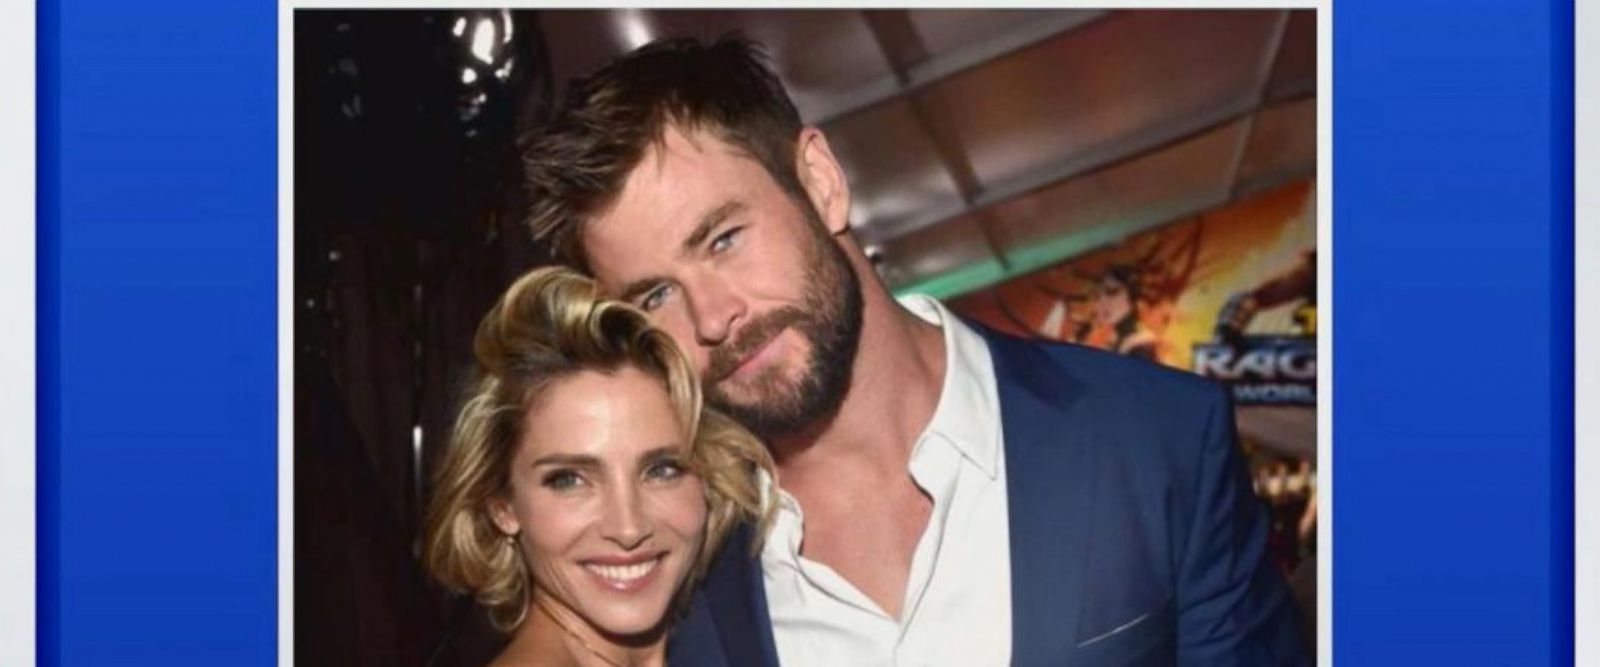 VIDEO: 'GMA' Hot List: Chris Hemsworth opens up about the 'onscreen chemistry' with his wife in '12 Strong'